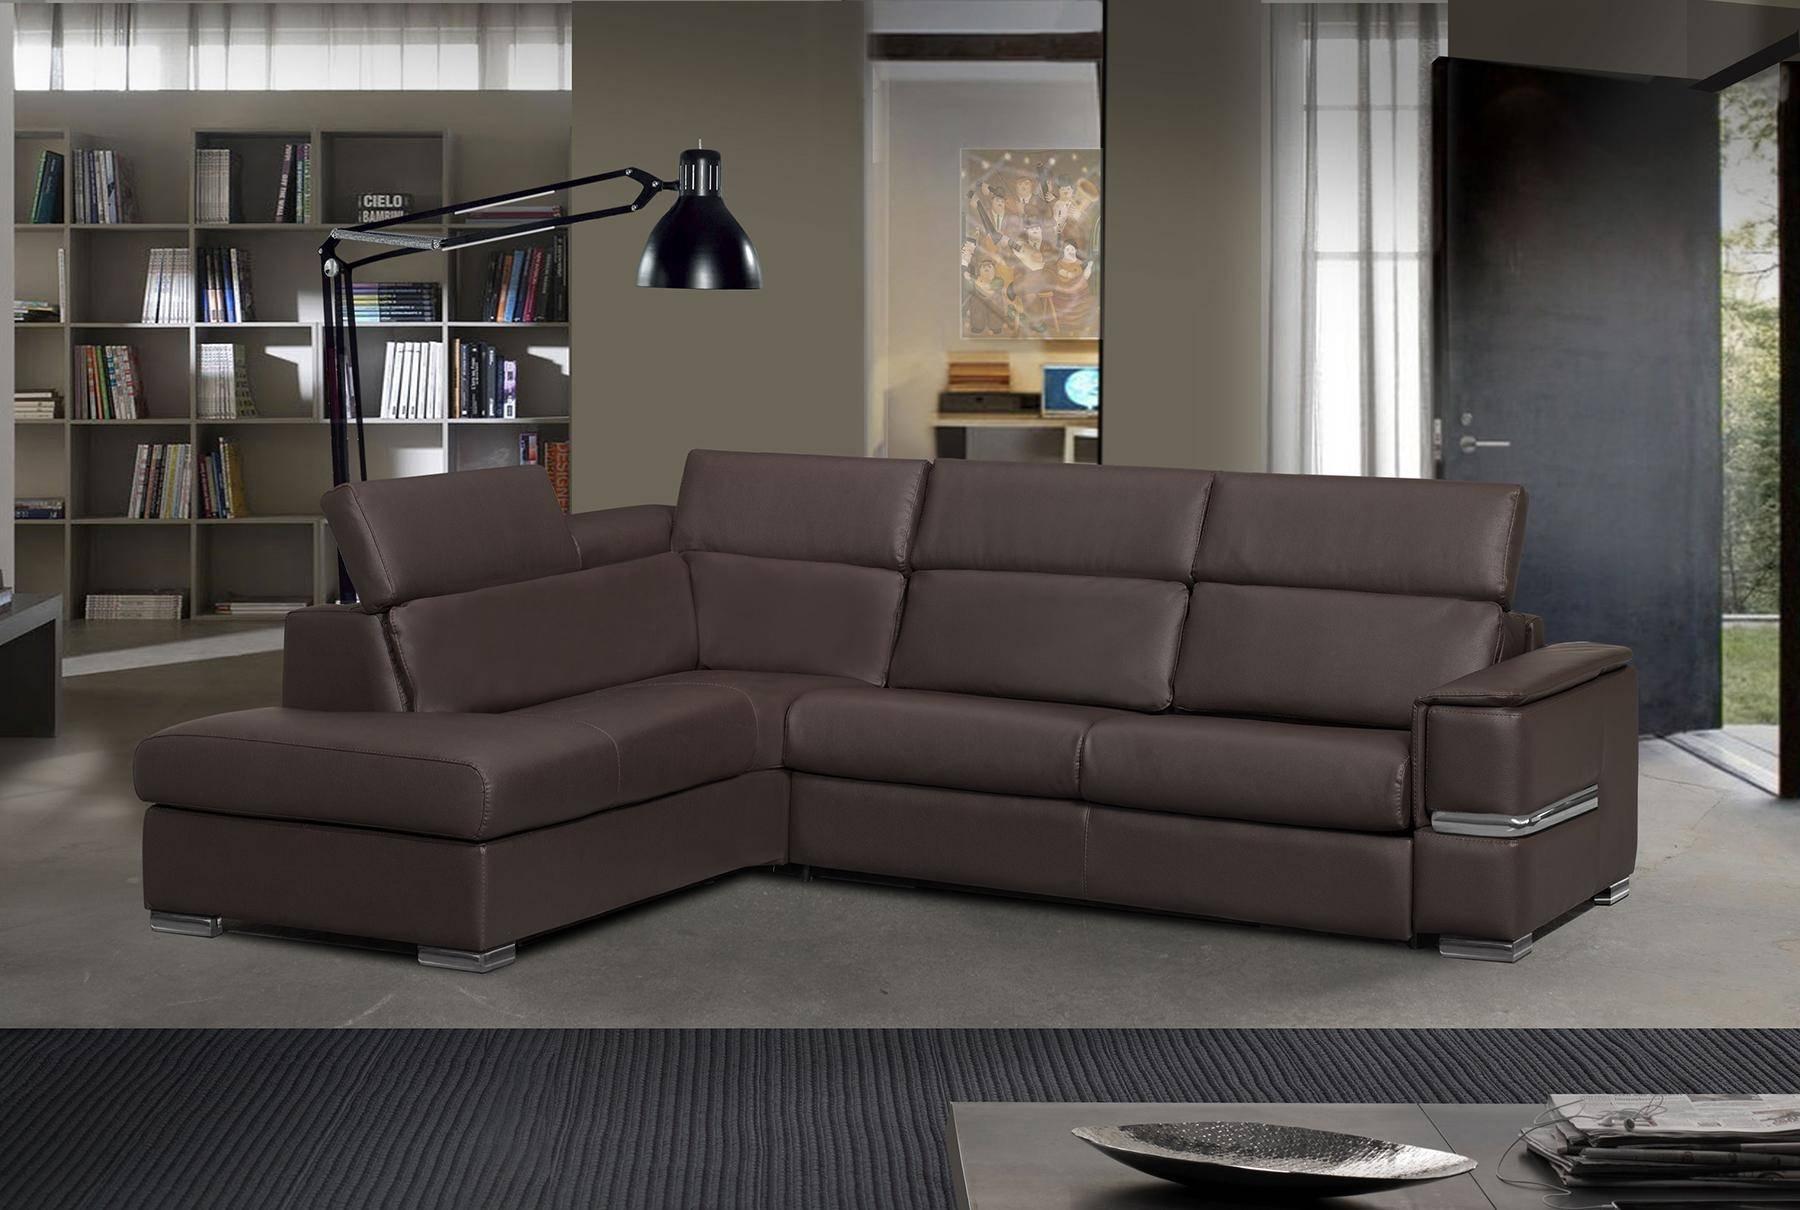 Excellent Esf Chiara Modern Grayish Brown Sectional Sofa Bed Left Hand Chase W Sleeper Pdpeps Interior Chair Design Pdpepsorg